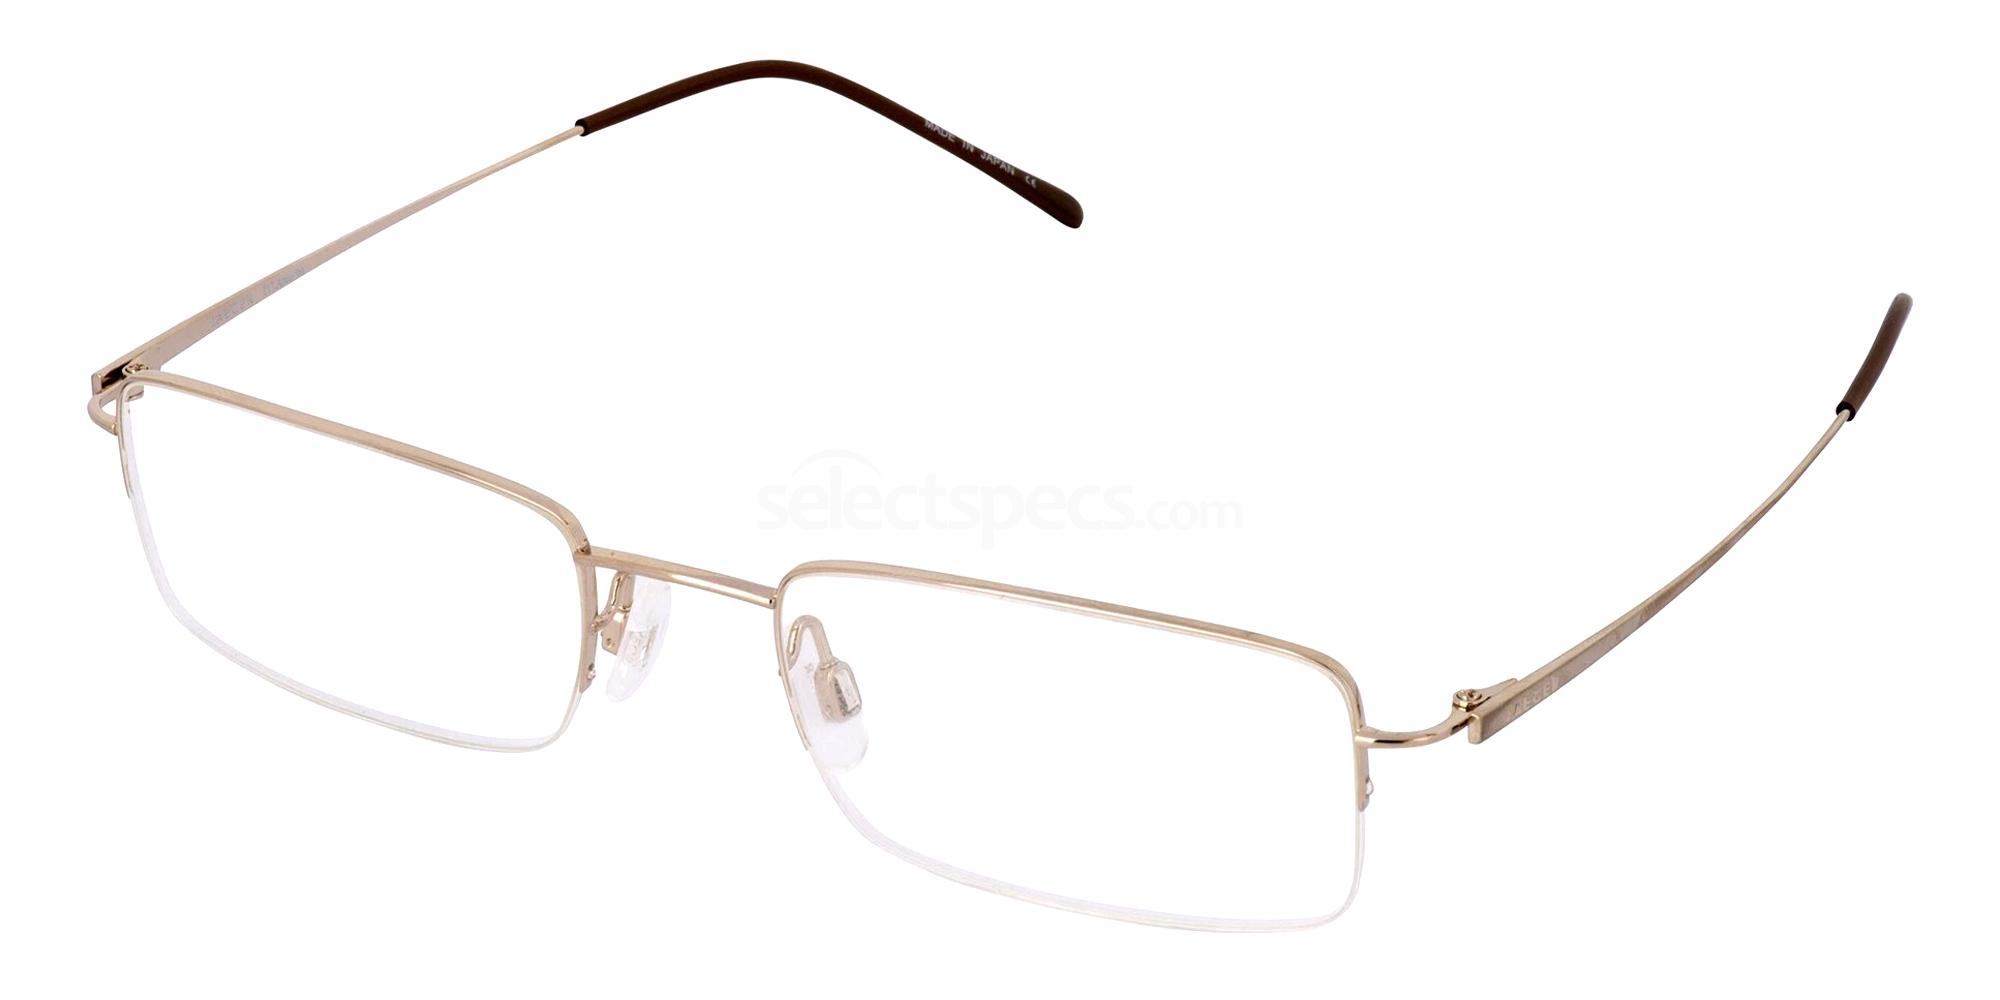 Jaeger Pure Titanium 292 glasses